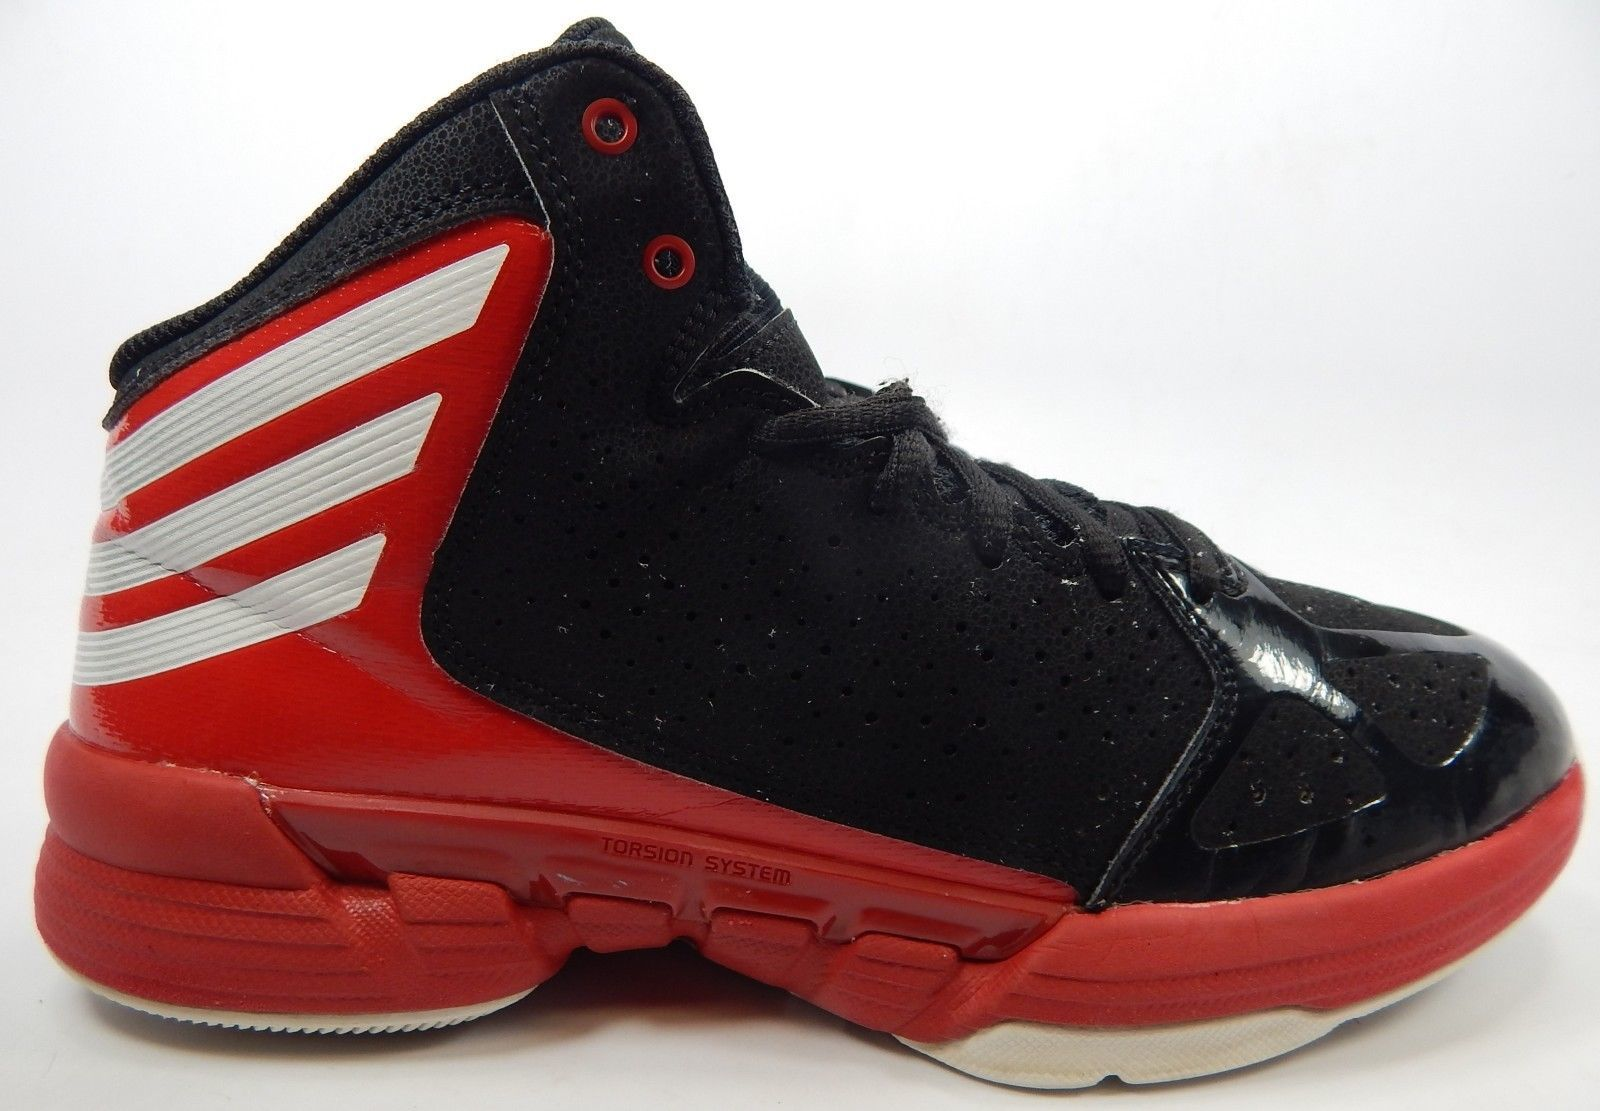 Adidas Hi-Court Size 6 M EU 38 2/3 Men's or Boy's Basketball Shoes Black Red